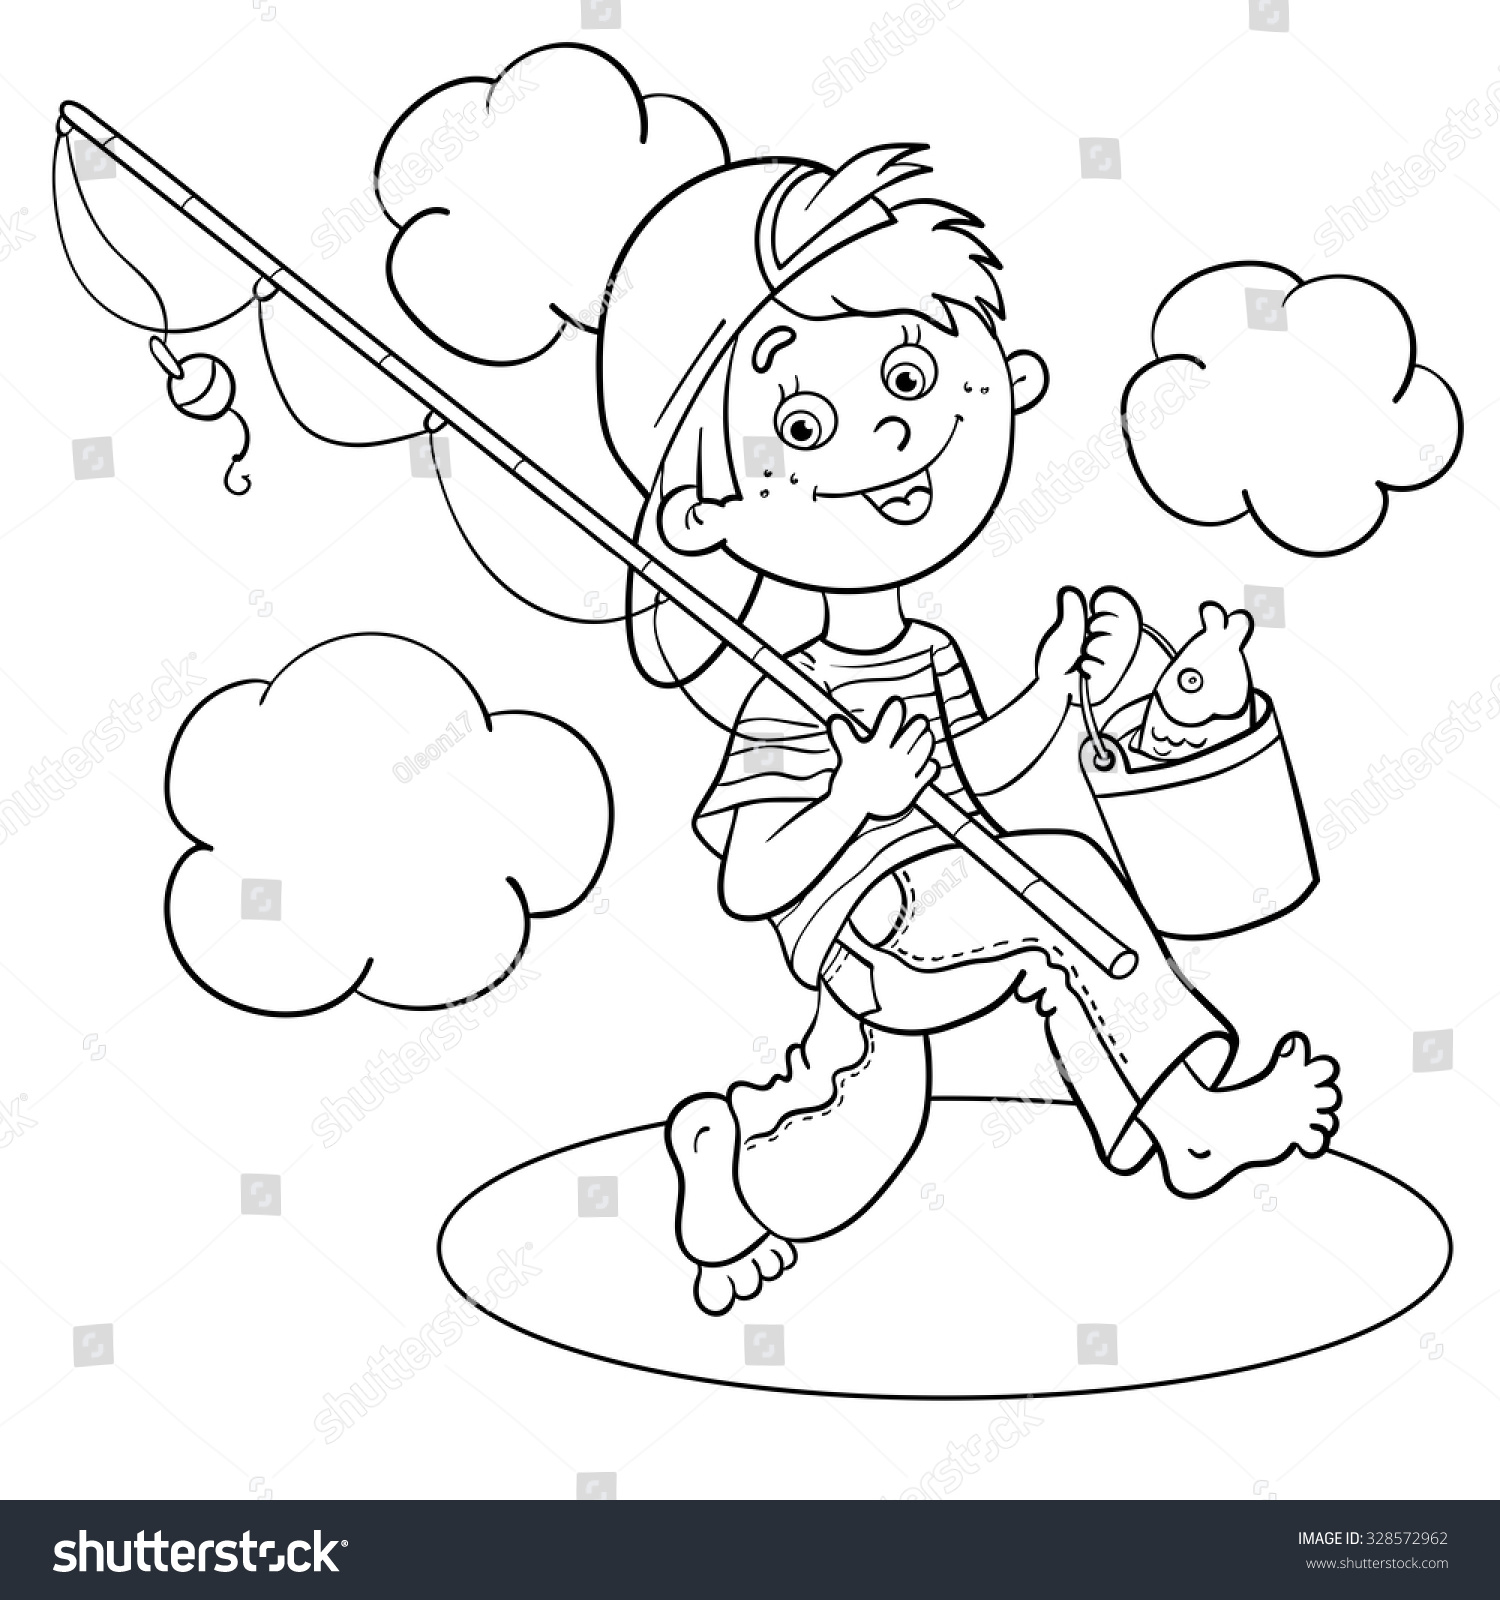 Clip Art Fishing Pole Coloring Page Eassume Com Outline Cartoon Boy Fisherman